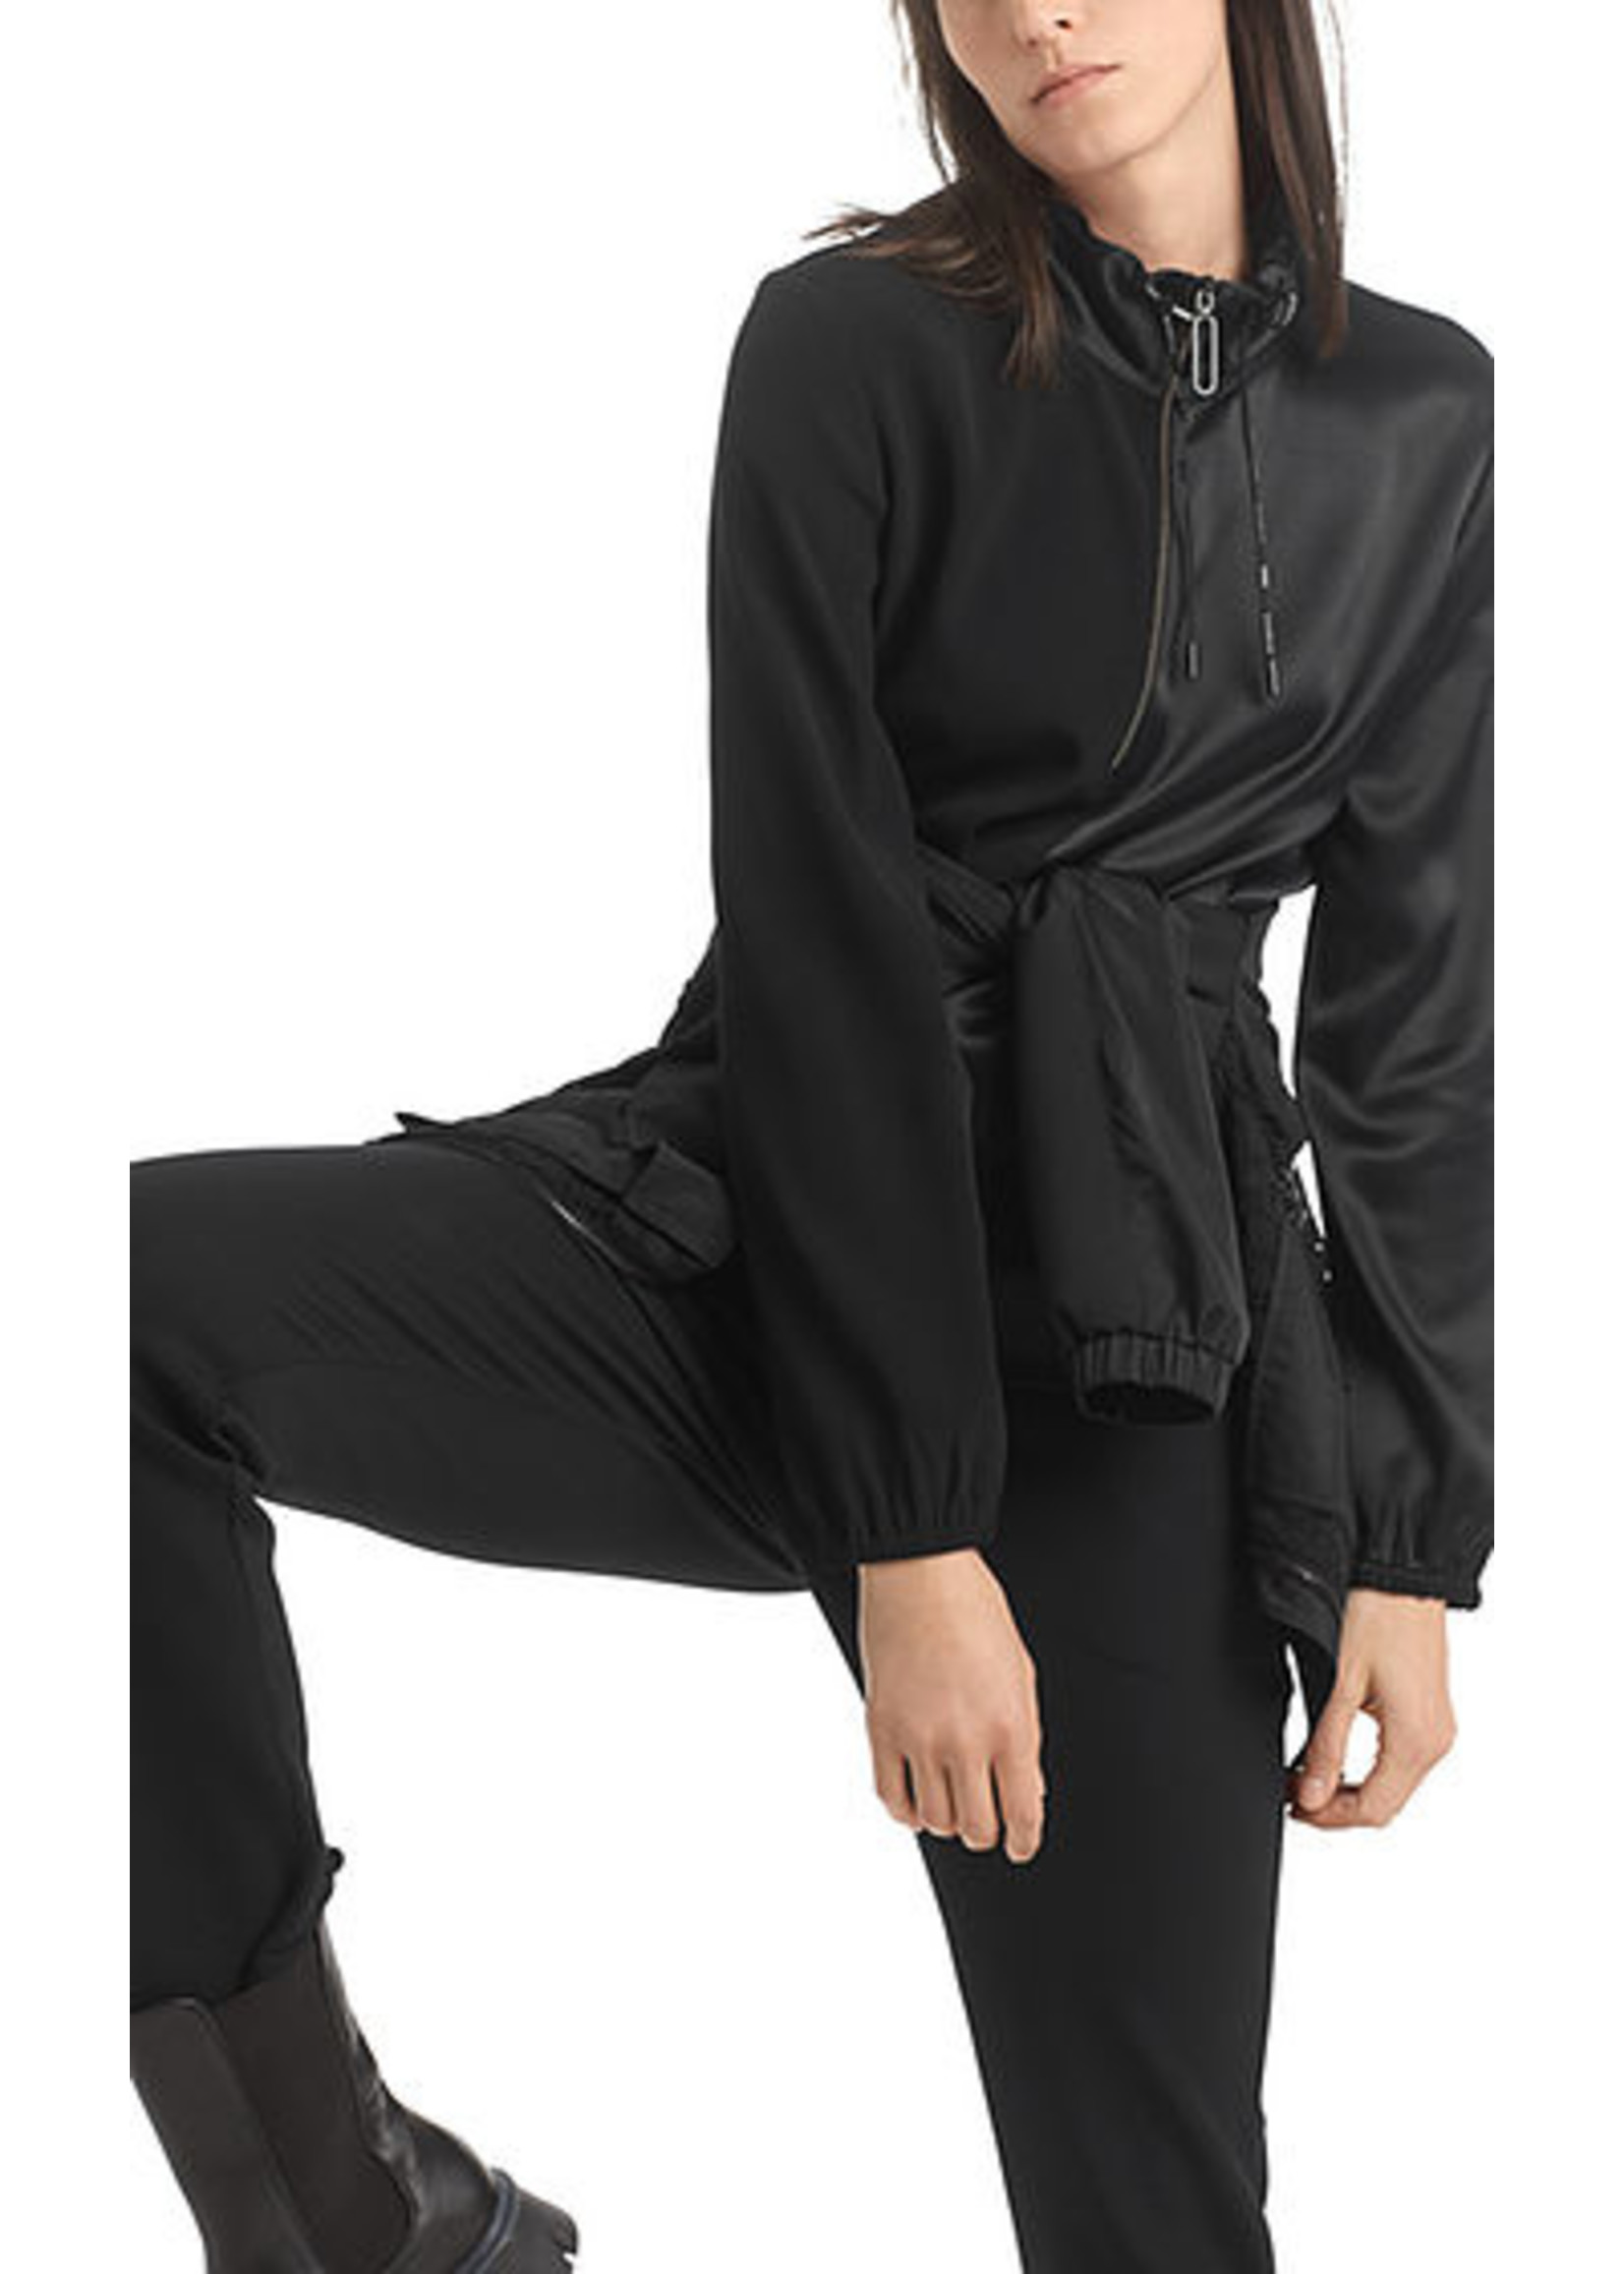 Marccain Sports Blouse RS 55.29 W63 black